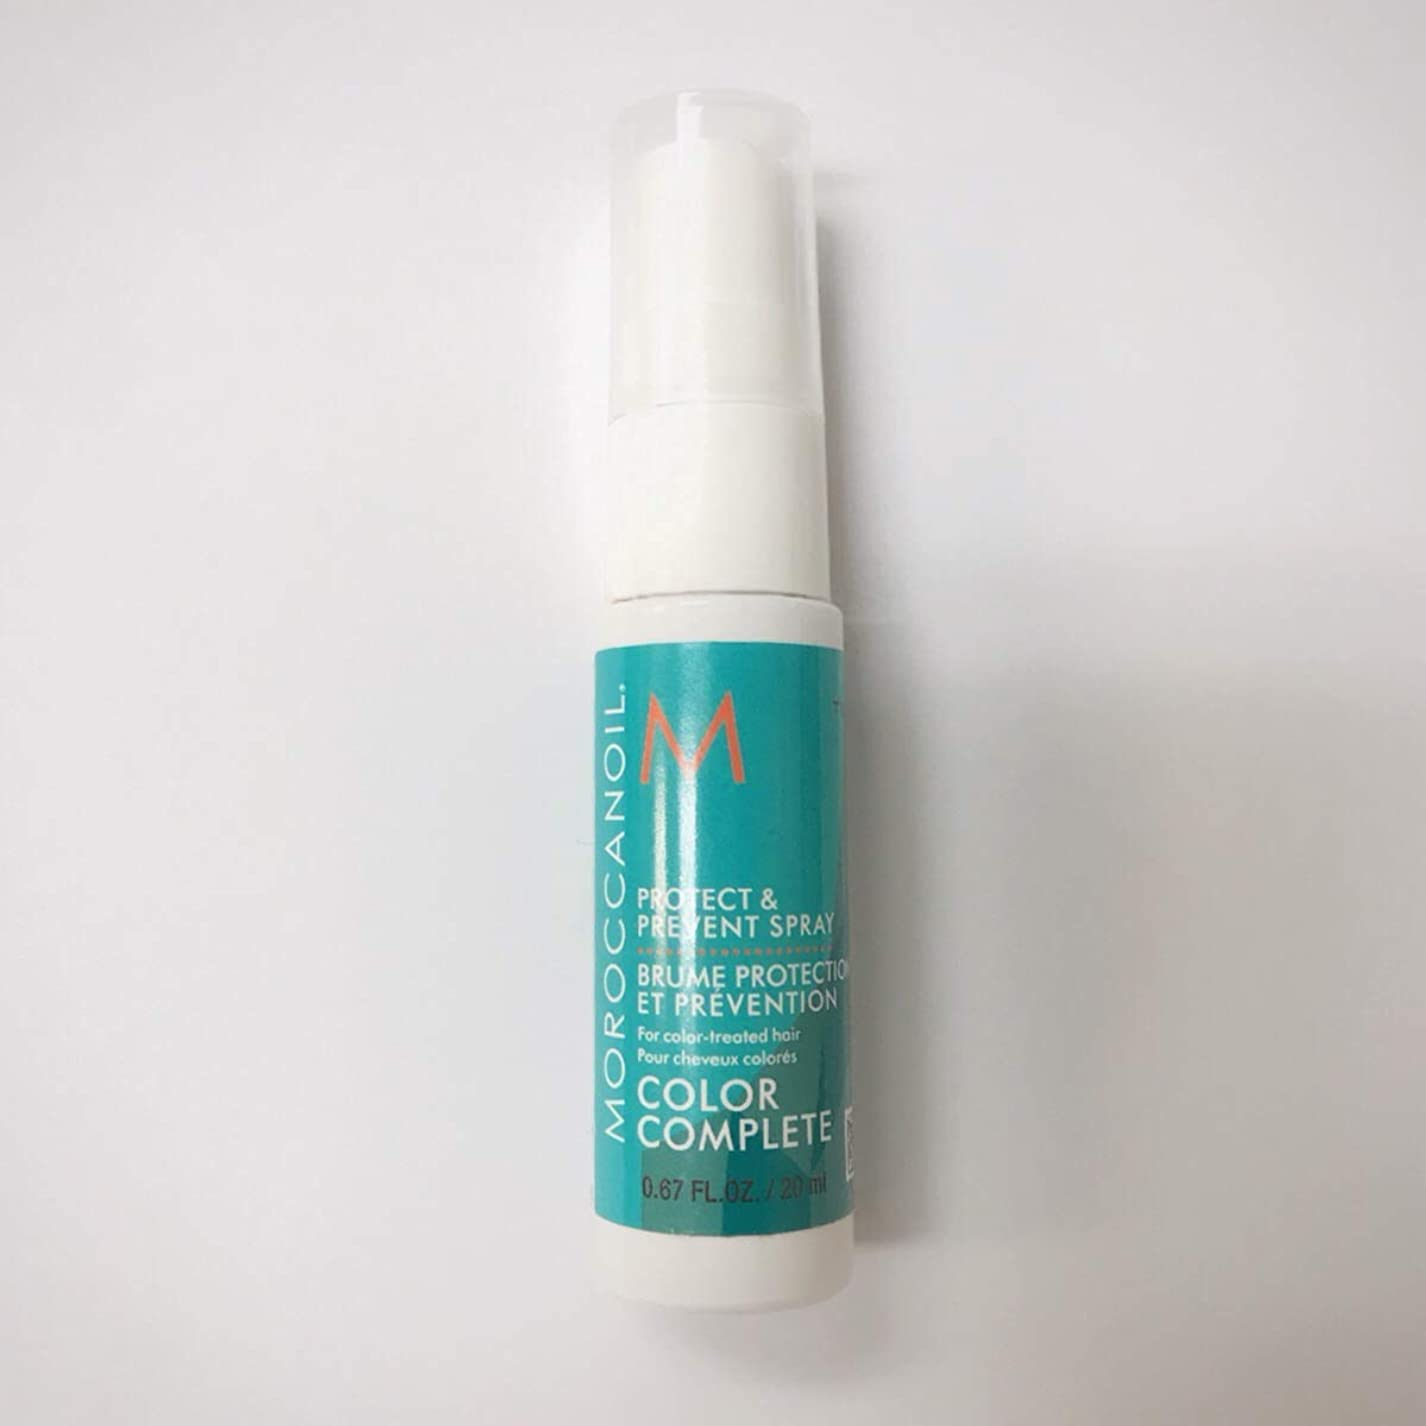 アクセスオーガニック塊Moroccanoil Protect & Prevent Color Complete Spray Travel Size 20ml [並行輸入品]